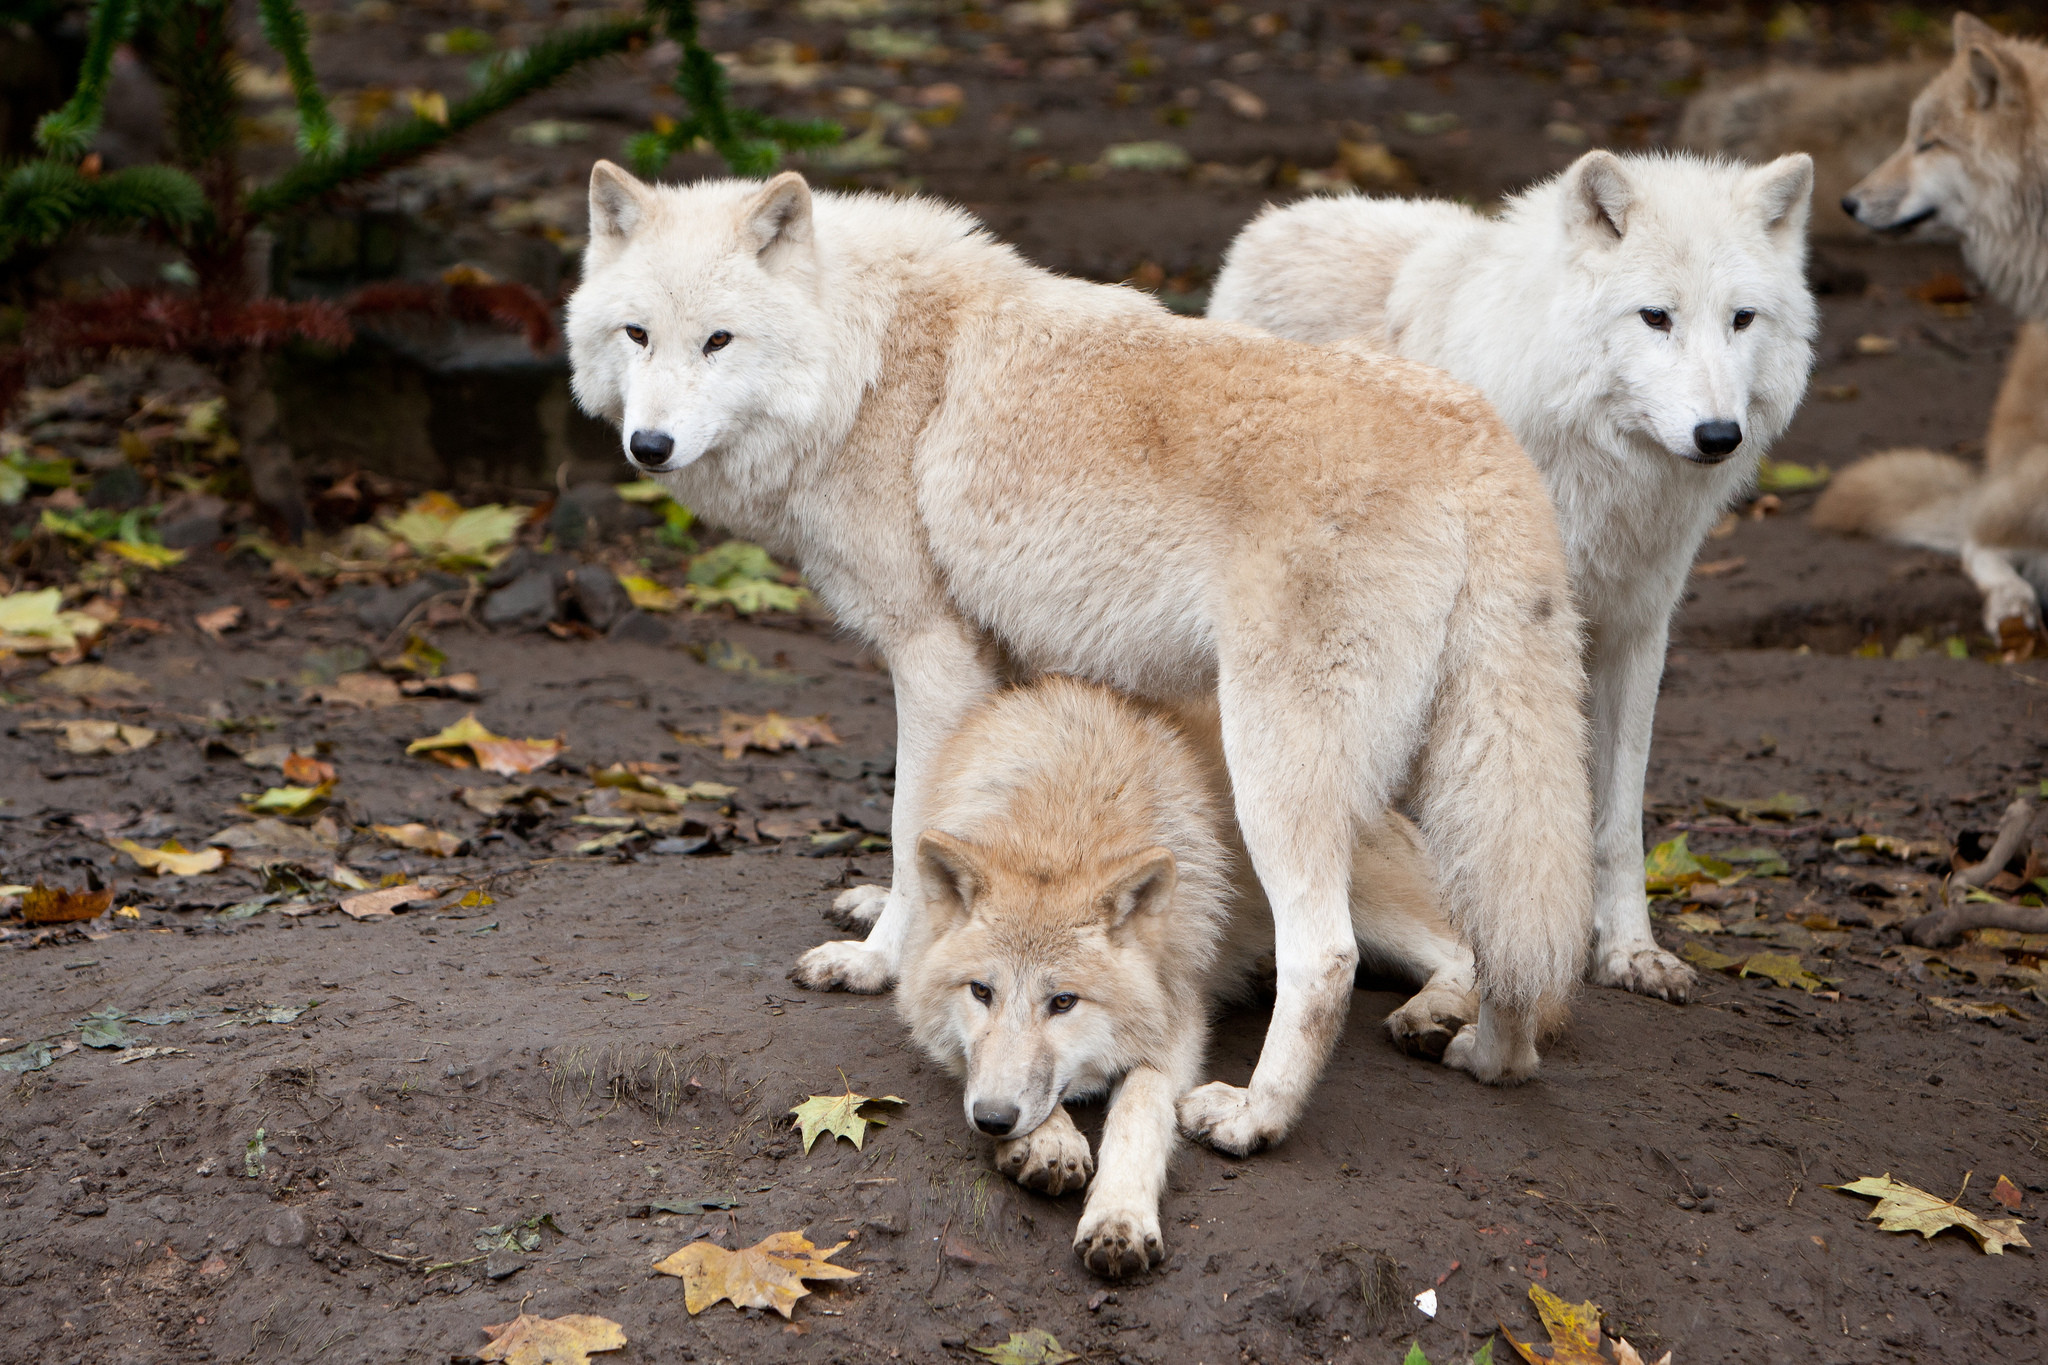 back to Wolf Facts and Information | Wolf Wallpapers HD Next Image .